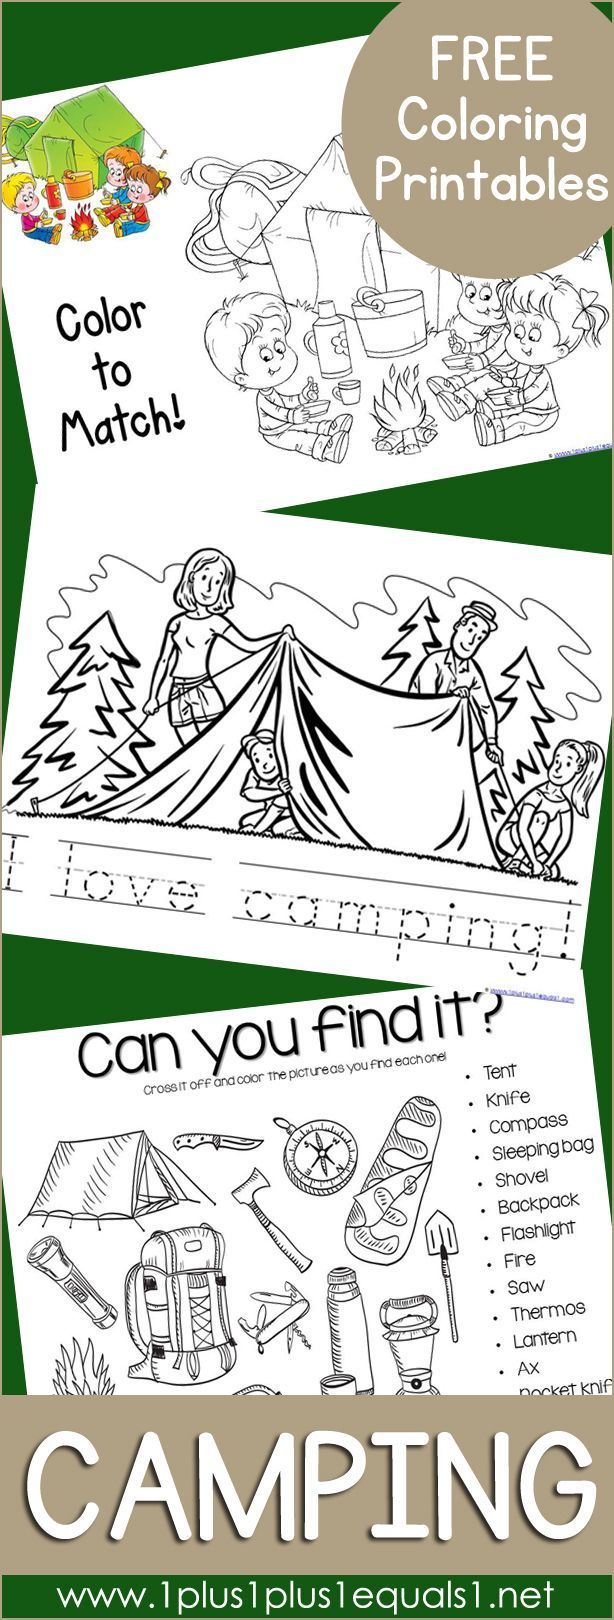 Free Camping Coloring Printables ~ Coloring activities and coloring ...